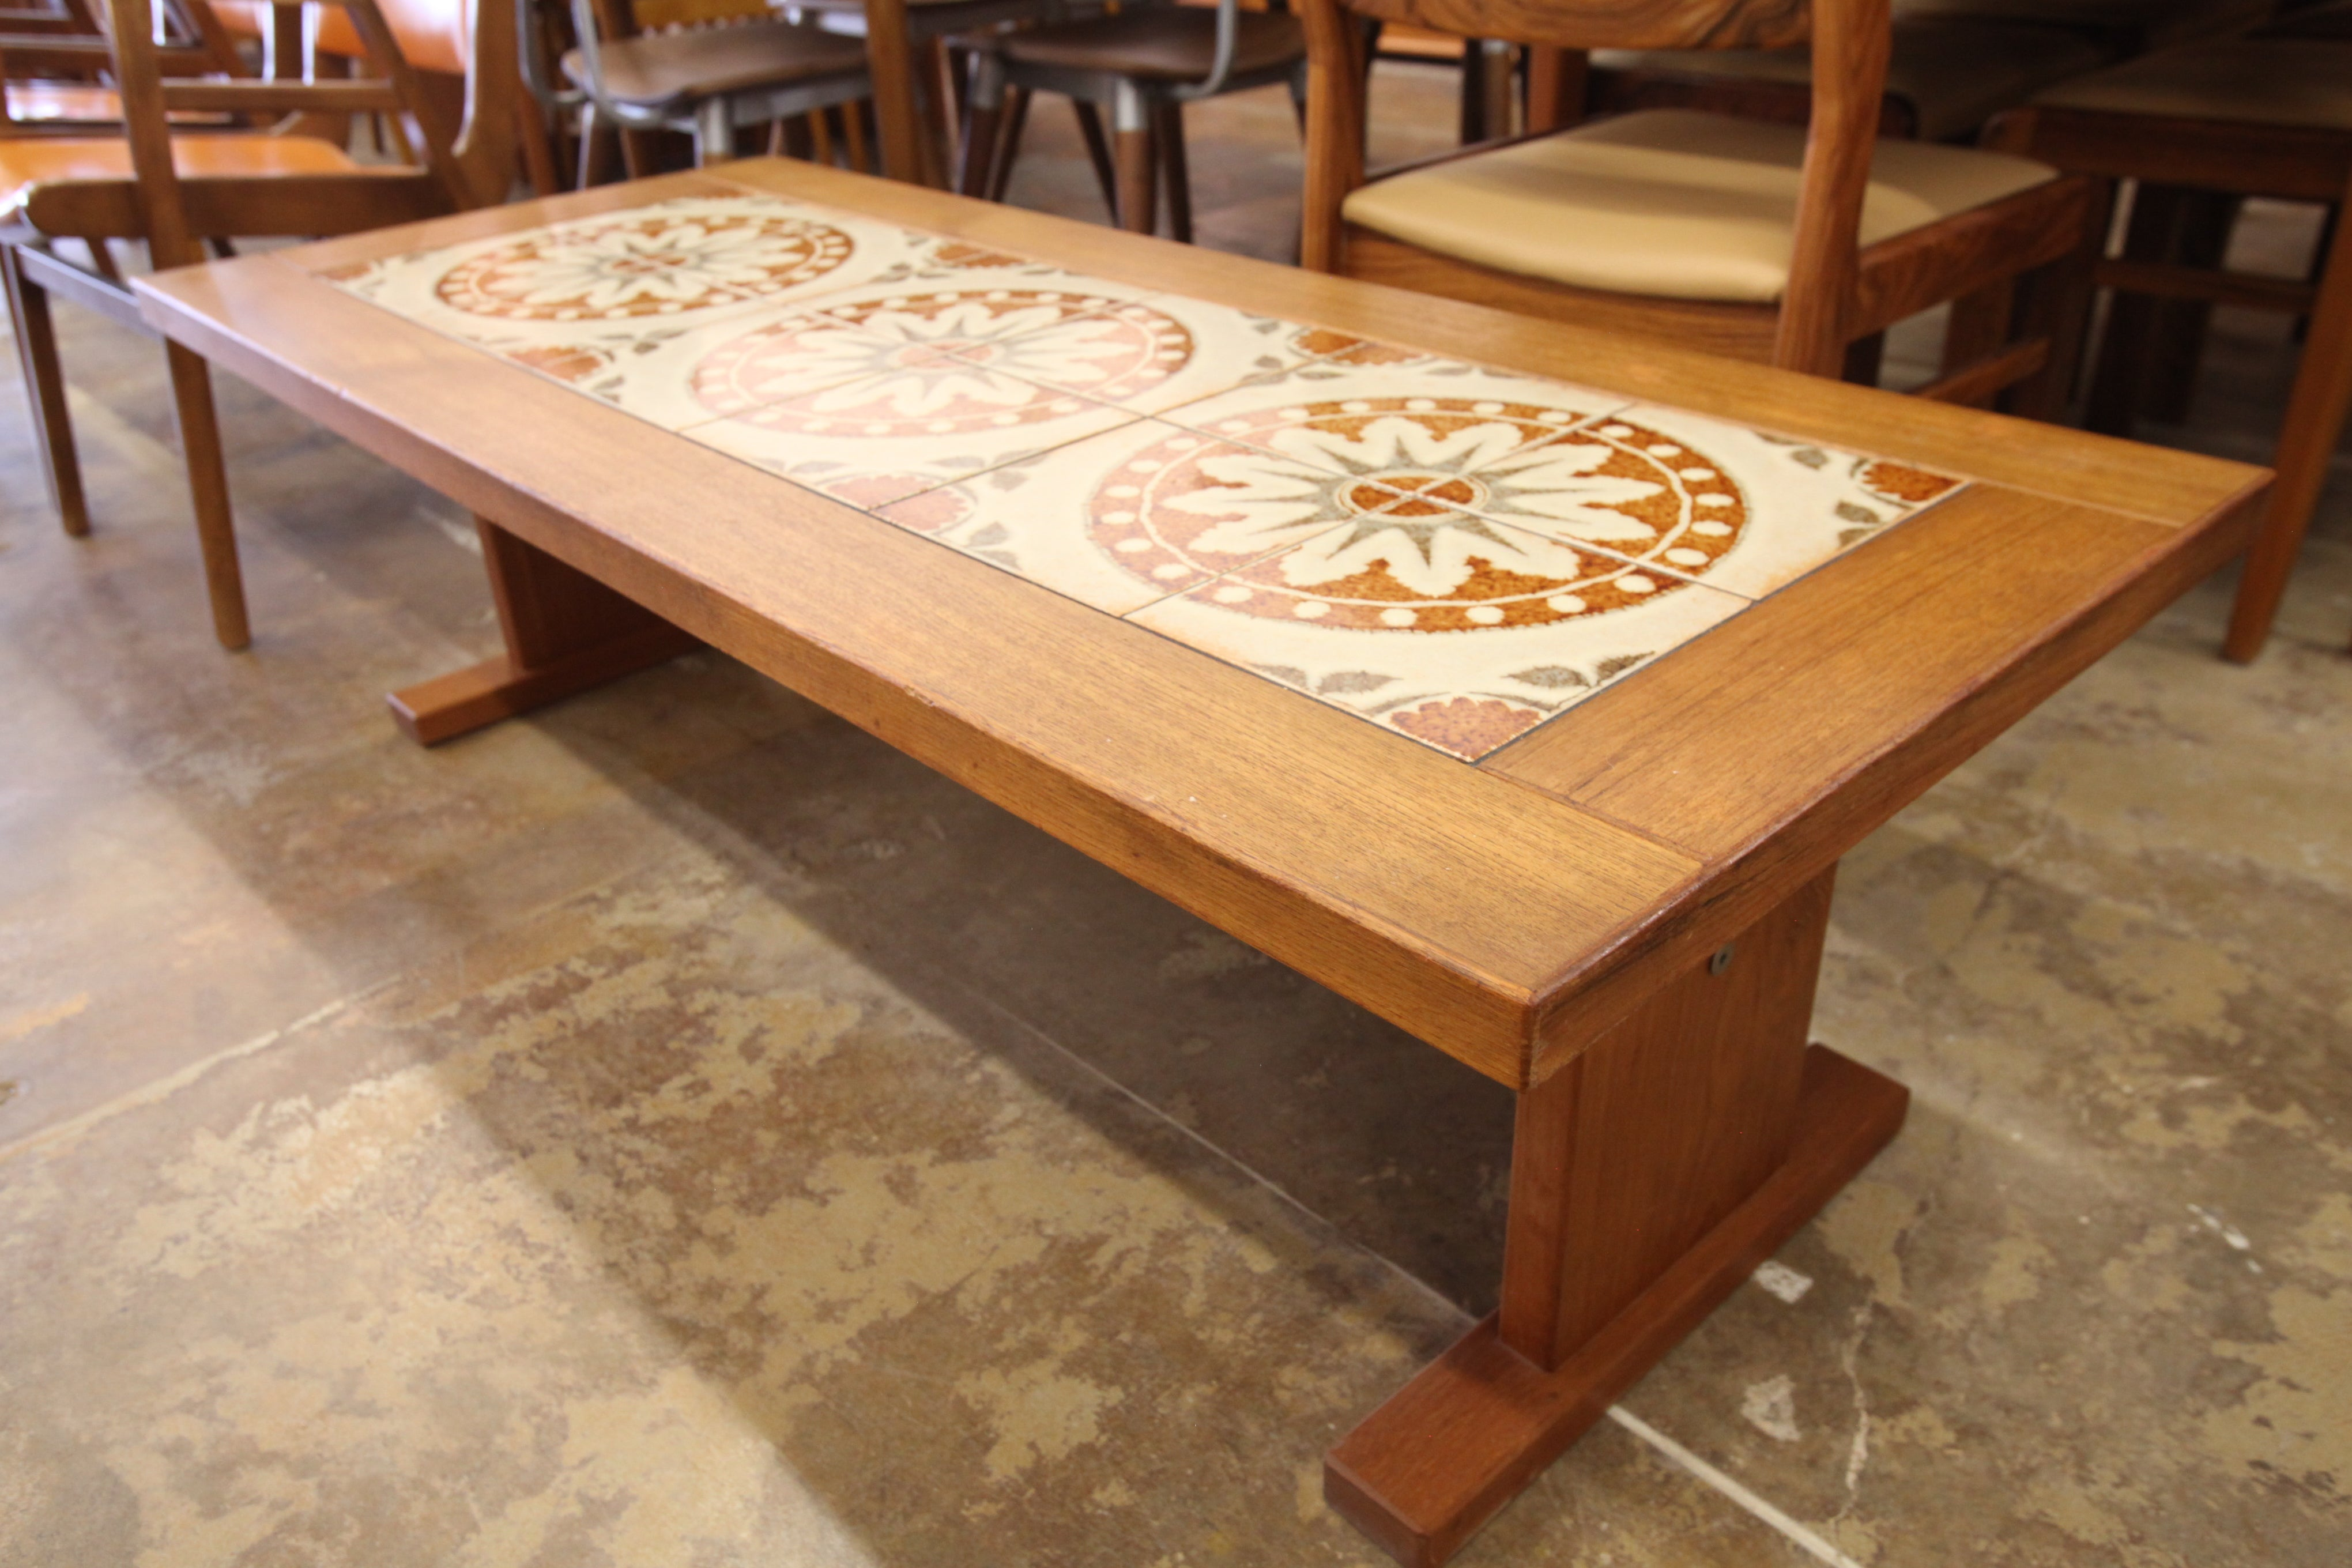 "Vintage Danish Teak/Tile Coffee Table by Gangso Mobler (56.25""L x 24.5""W x 16.75""H)"